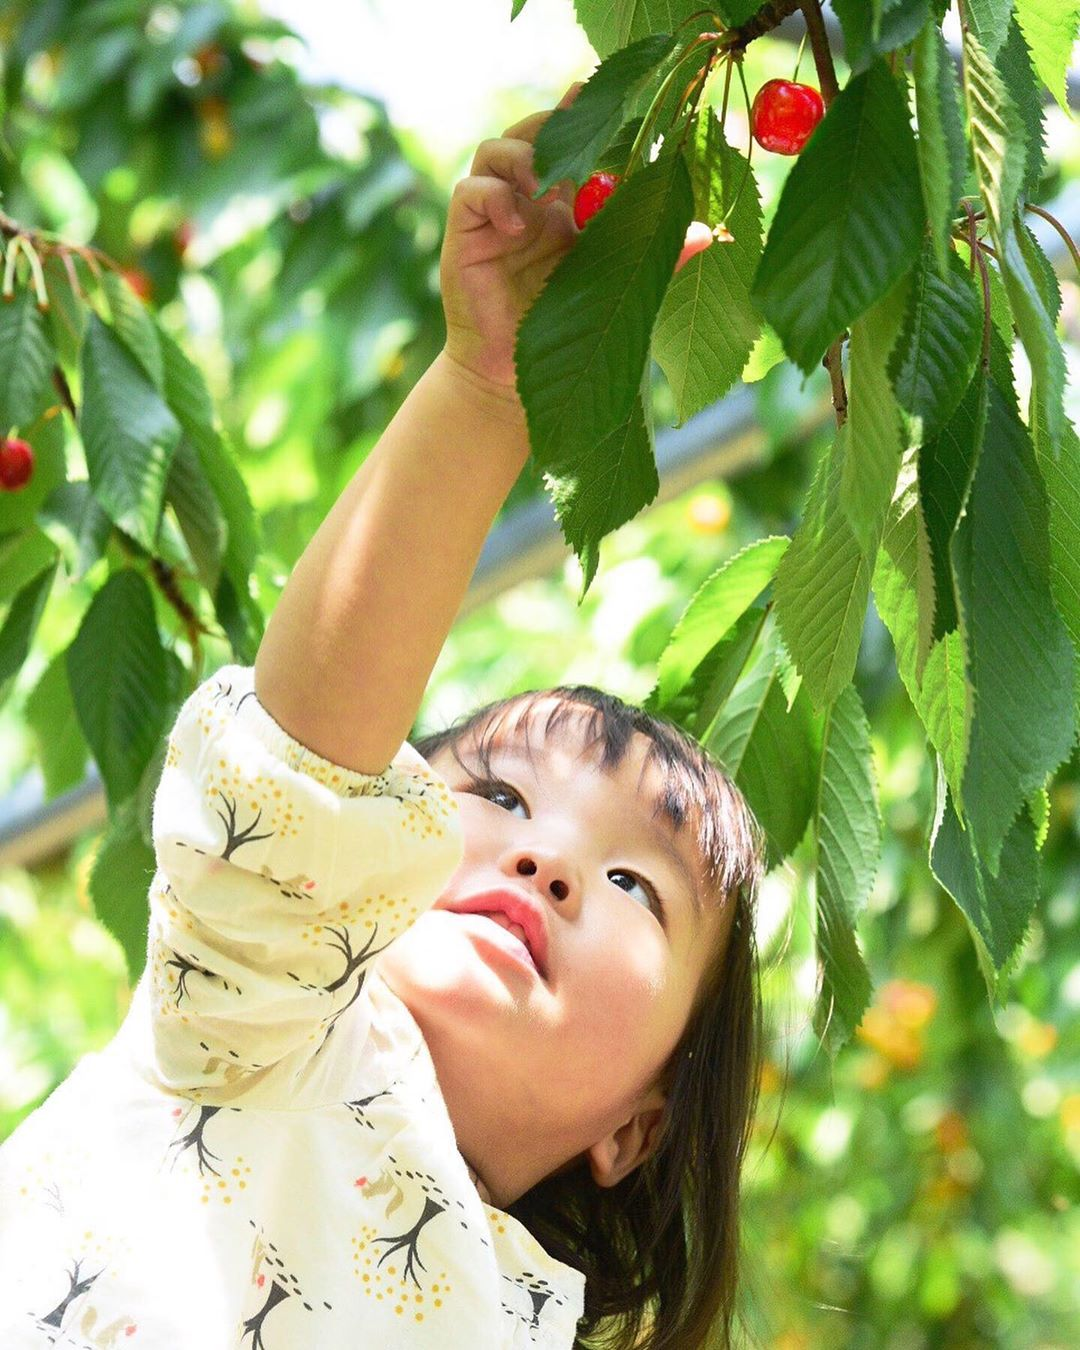 Cherry picking in Soubetsu